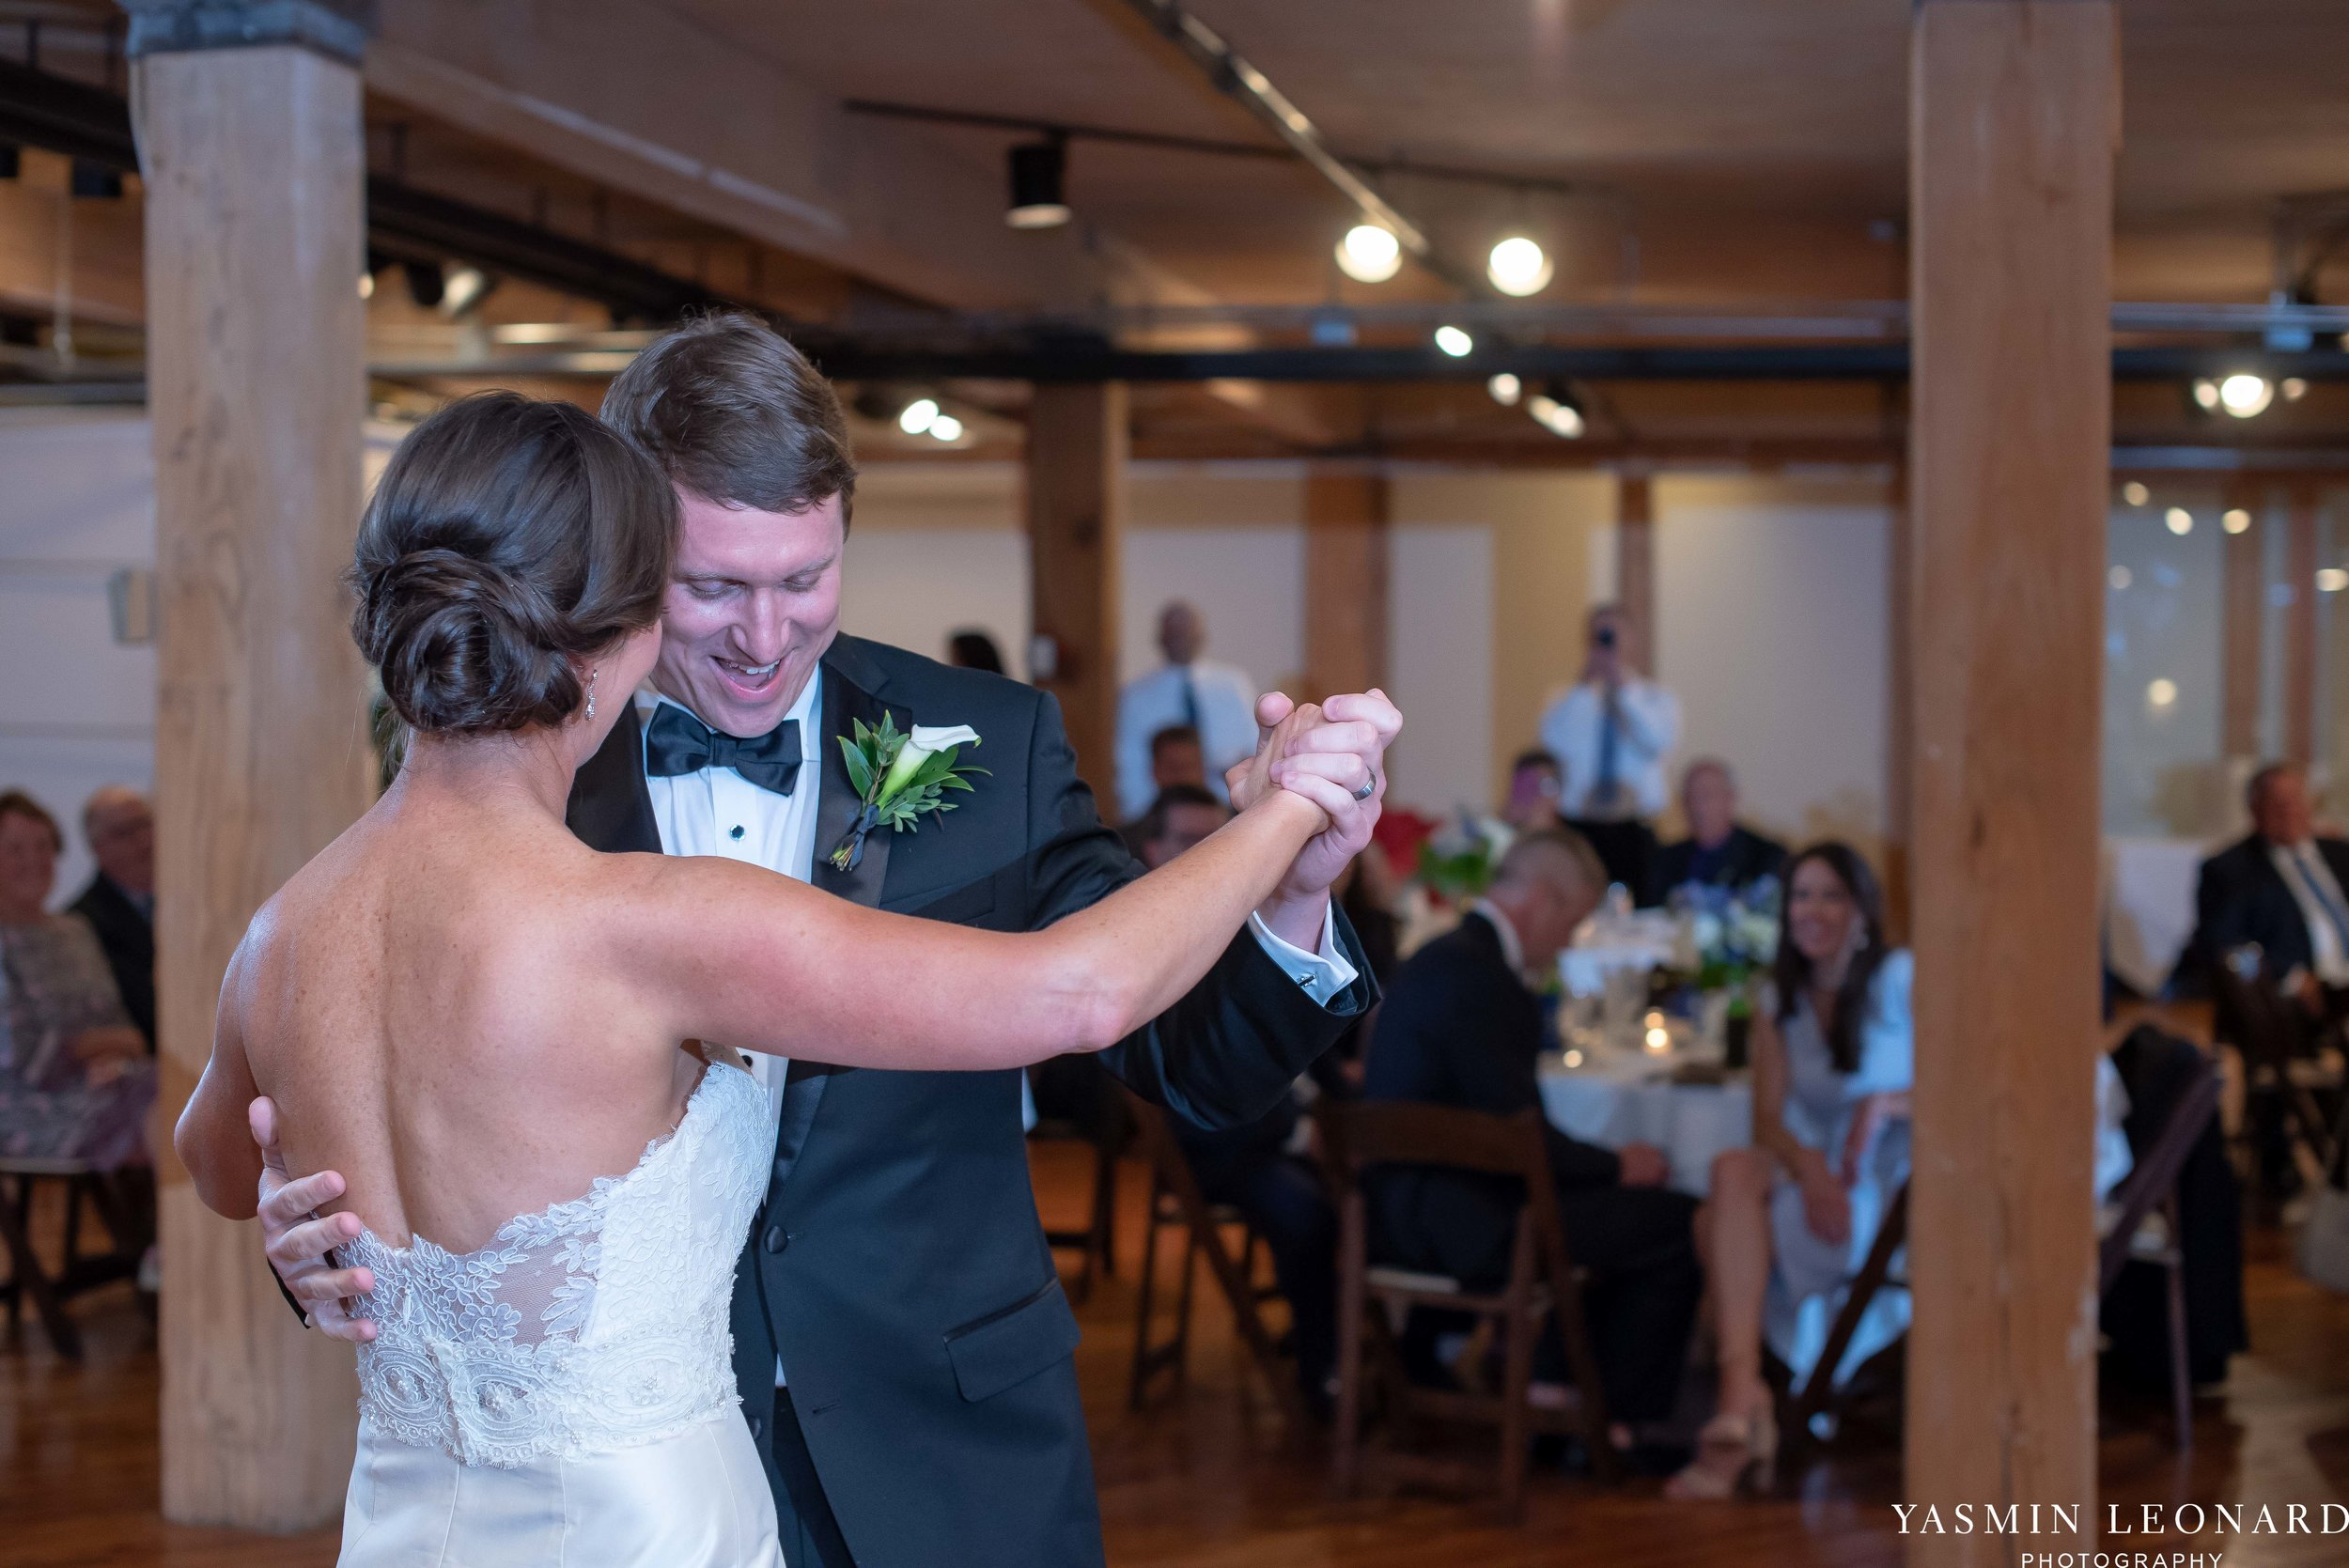 String and Splinter Club - Wesley Memorial UMC - High Point Weddings - NC Venues - High Point Weddings - Yasmin Leonard Photography-57.jpg